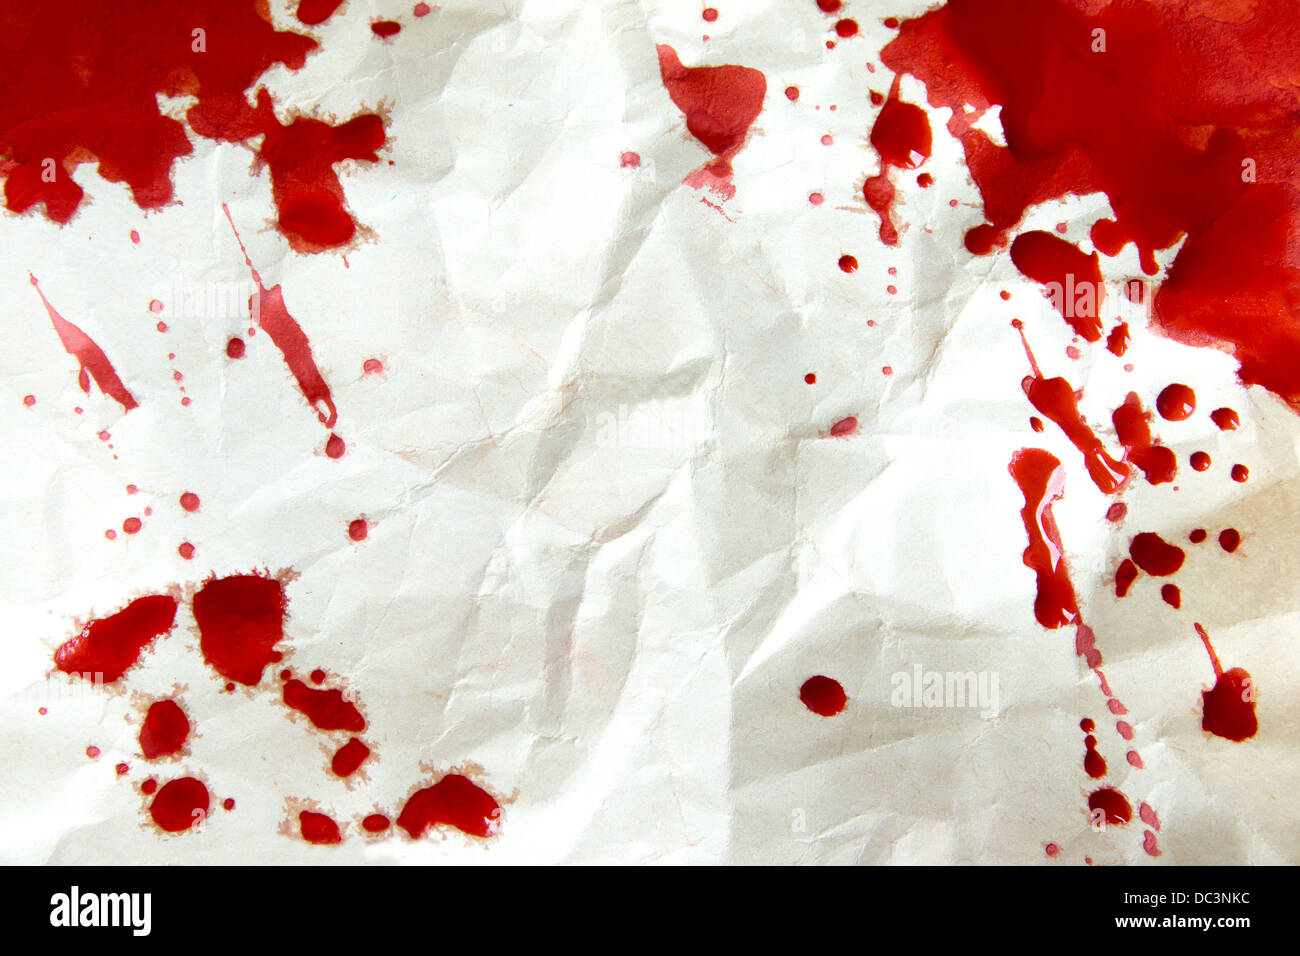 blood splatter analysis paper Bloodstain pattern analysis is conducted by trained and skilled analysts who have the interpretation of blood spatter may not always be definitive each analyst is expected to use their training, experience and education to support conclusions.